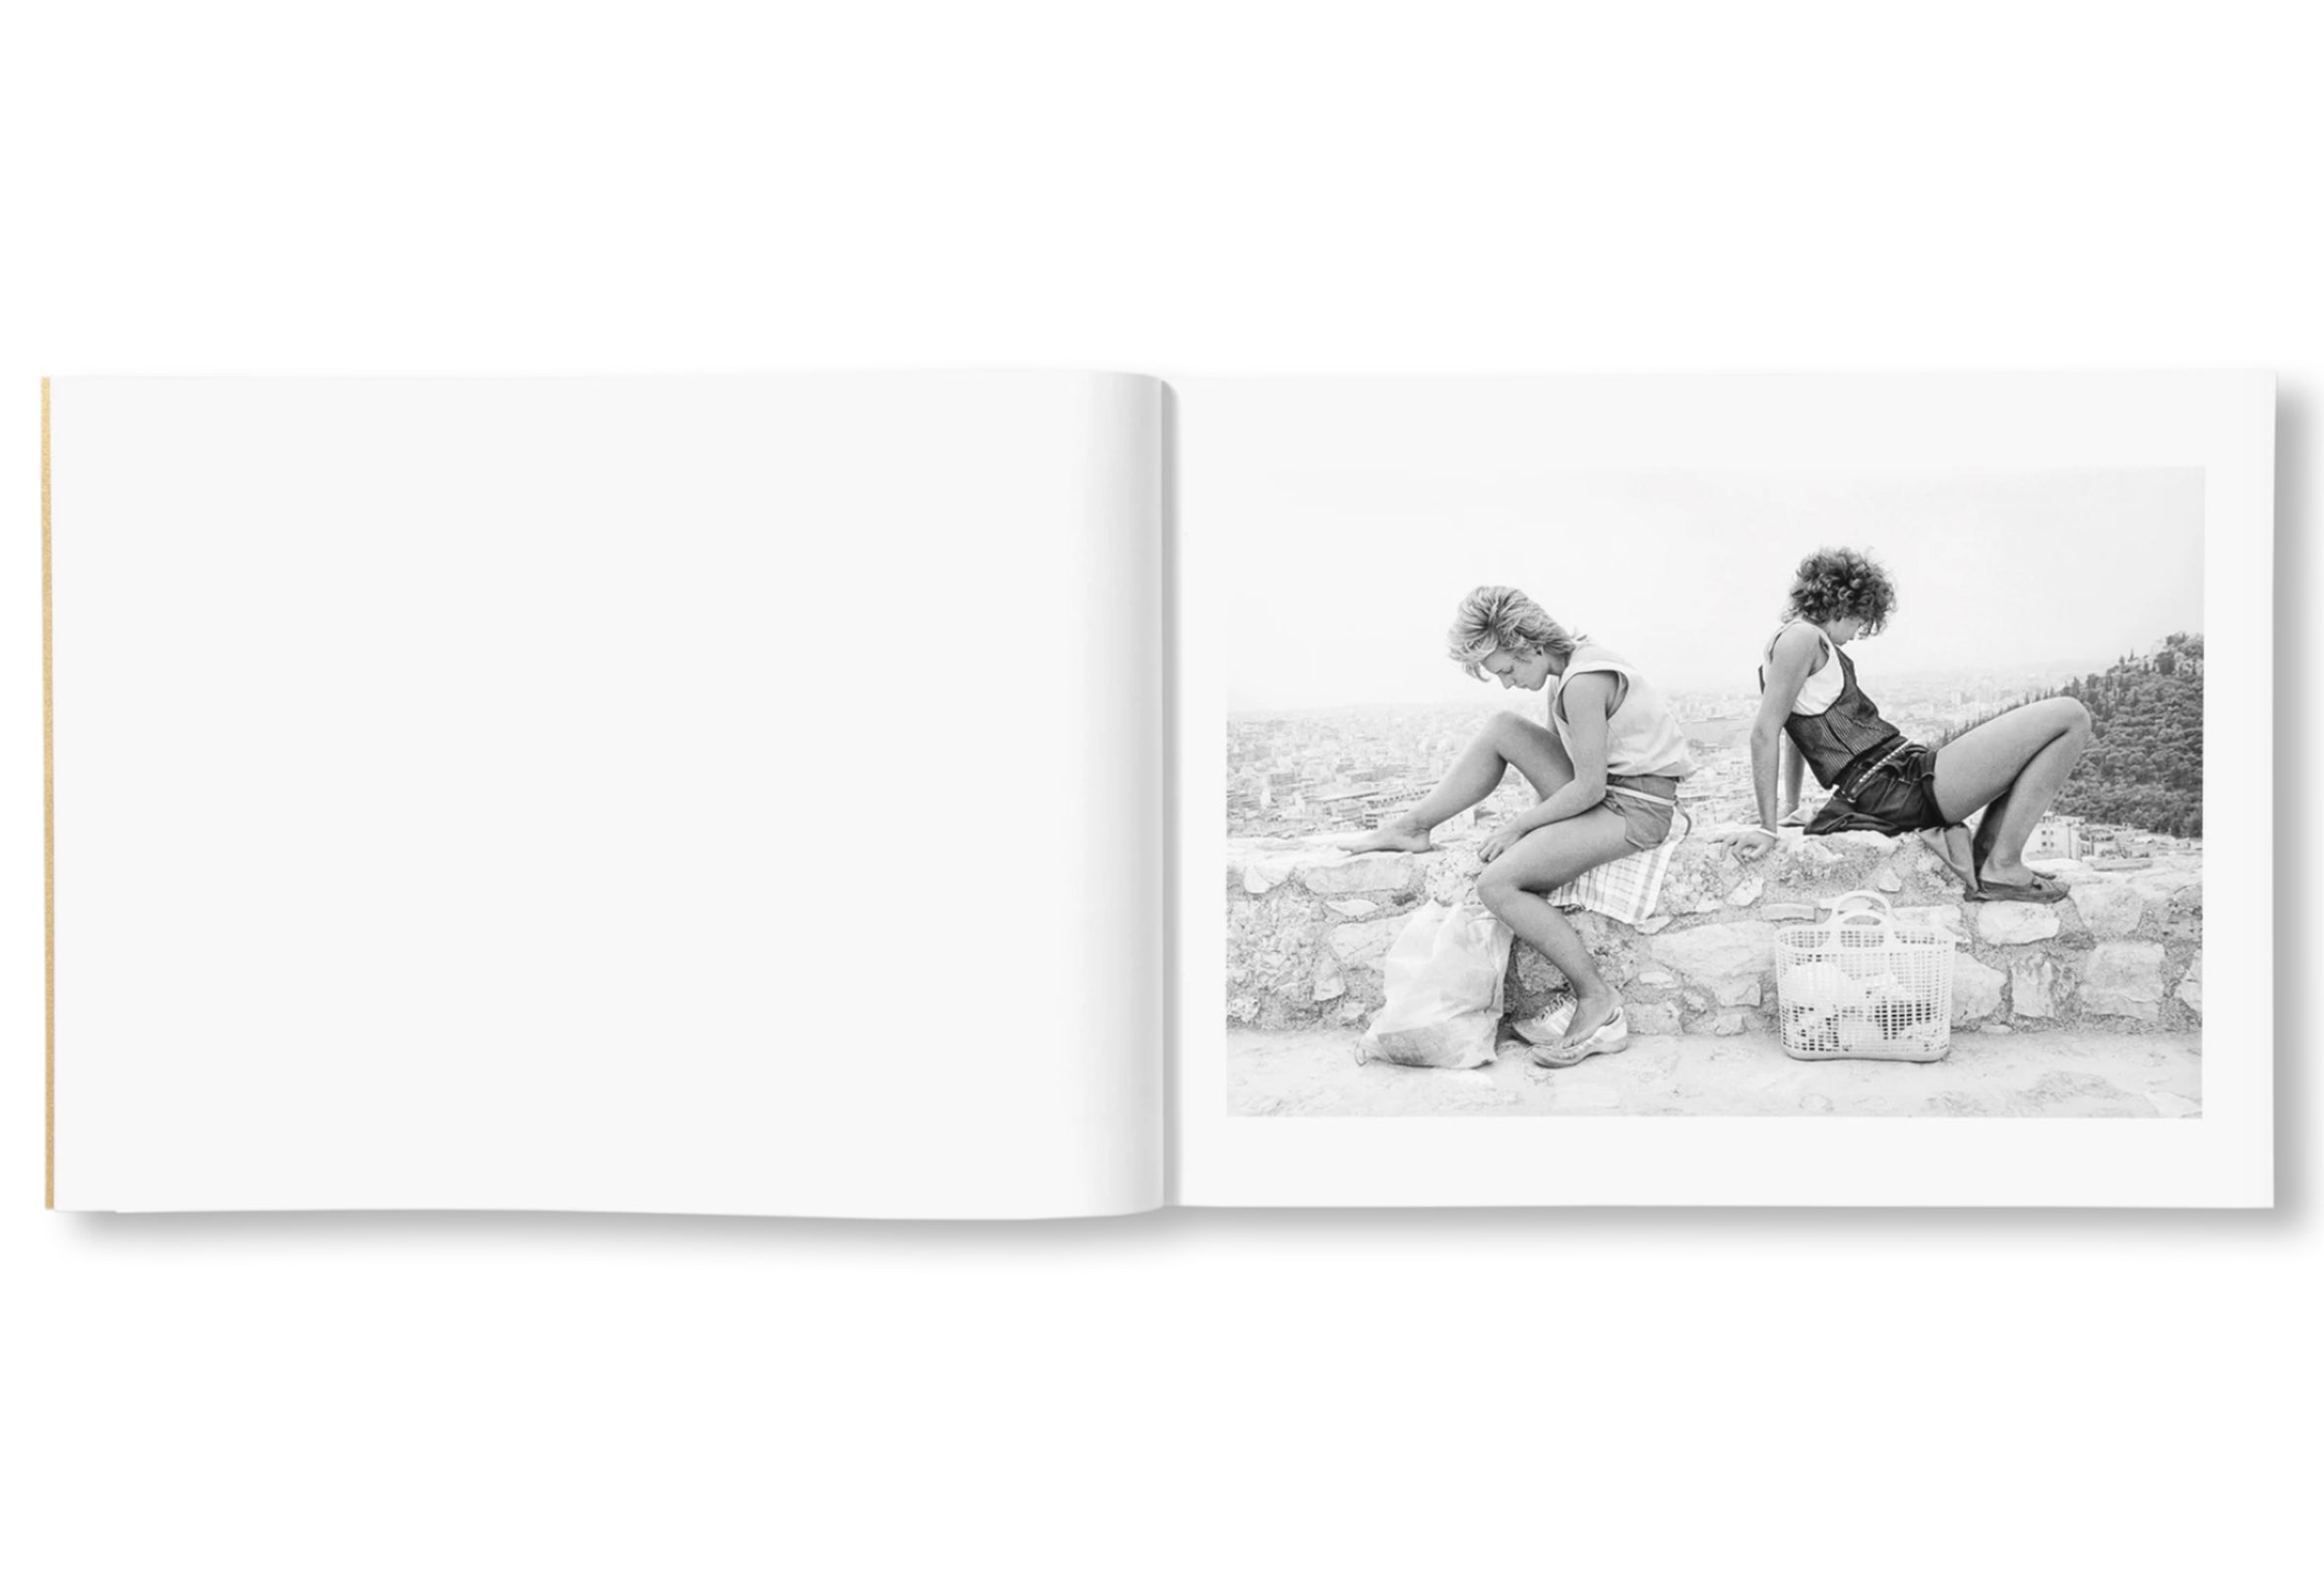 ON THE ACROPOLIS by Tod Papageorge [SIGNED]